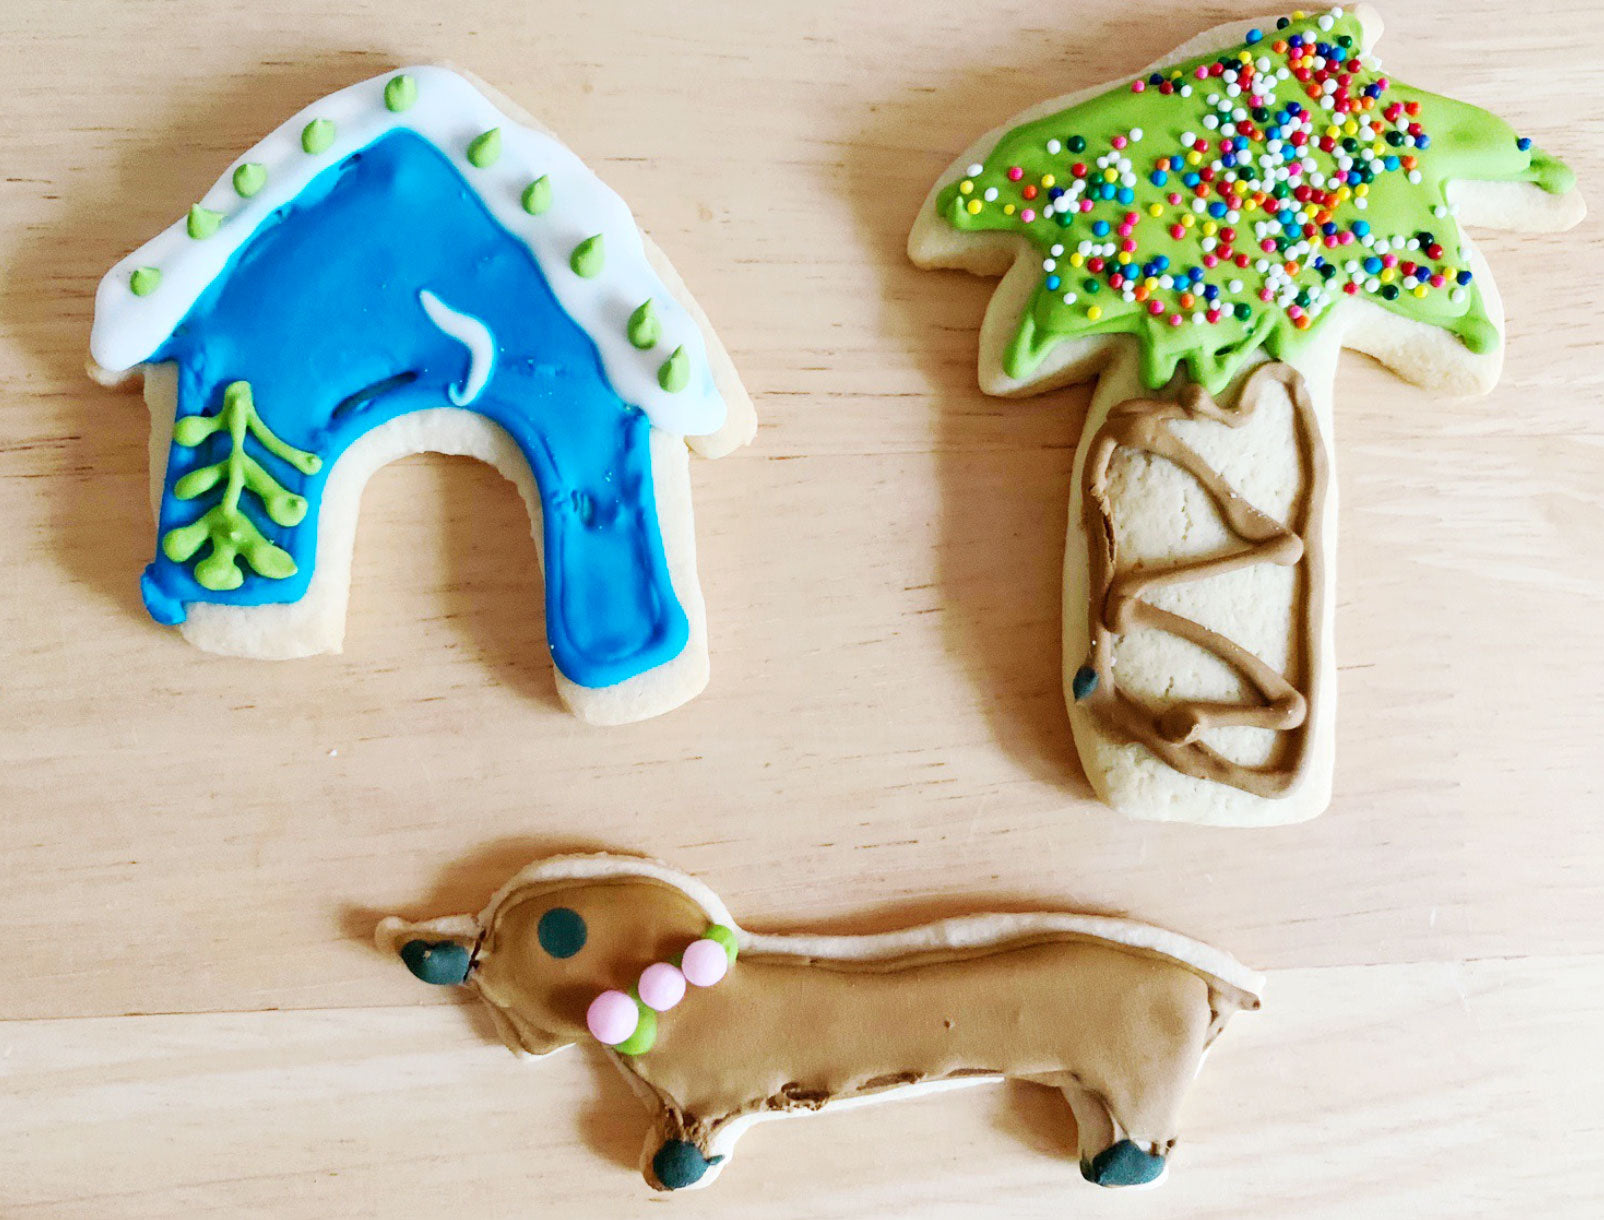 sugar cookies in the shape of a house, palm tree, and dachshund